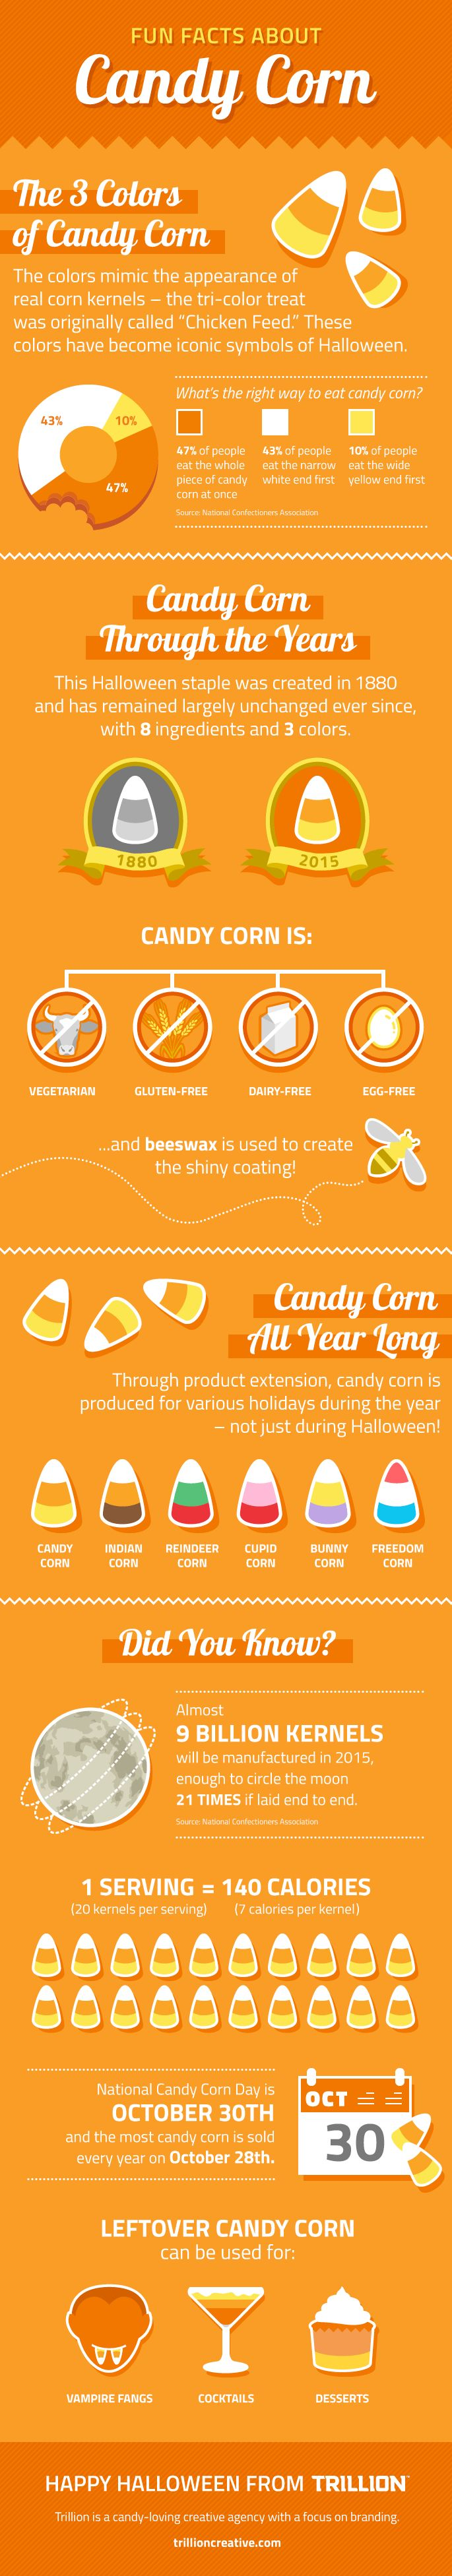 After you eat one Candy Corn and remember how much they suck, you can use the leftovers to bake into cakes or melt into martinis.